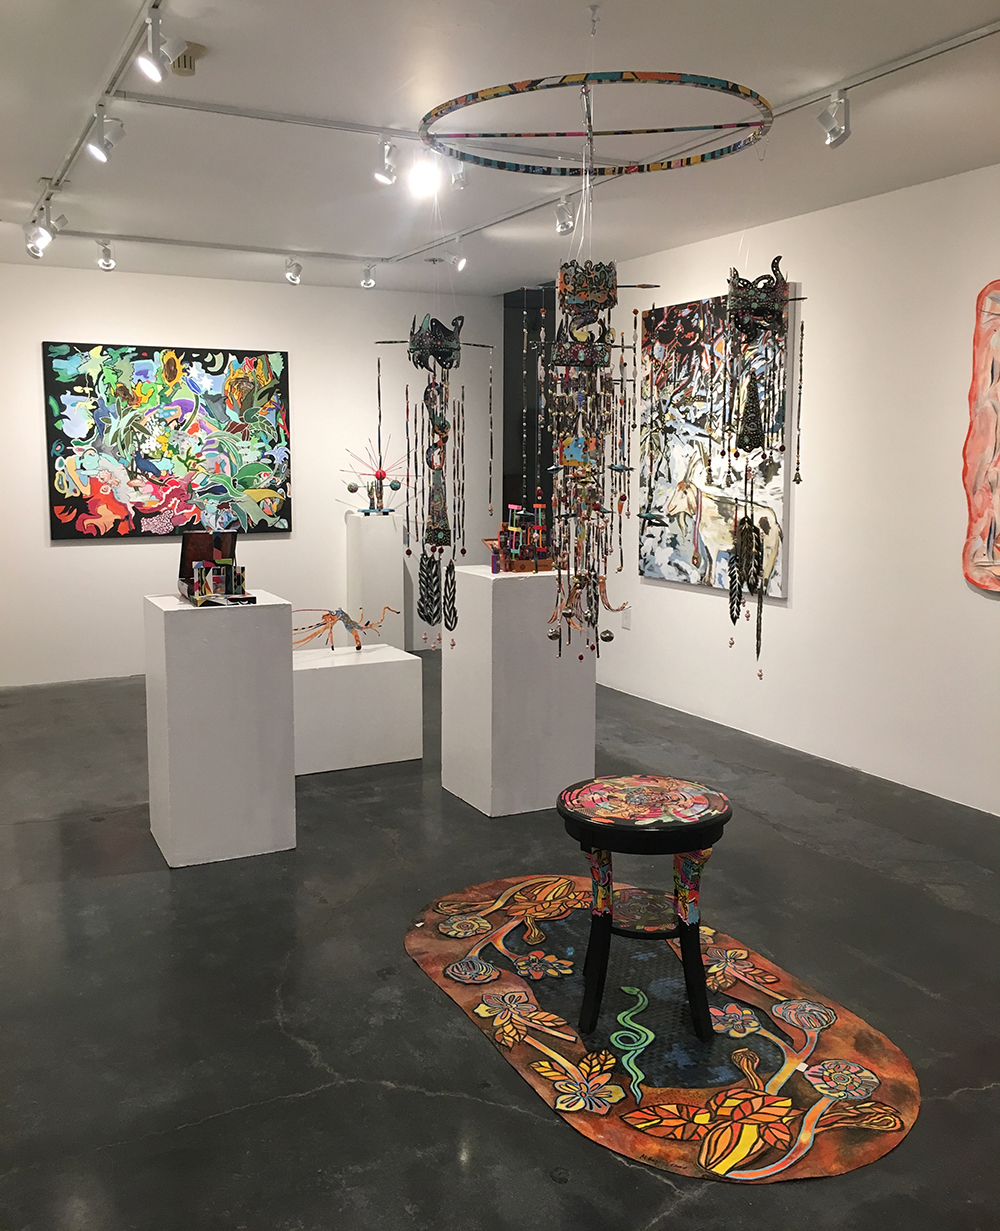 Margret Hugi-Lewis,  New Works to Stimulate the Senses , installation view, 2019